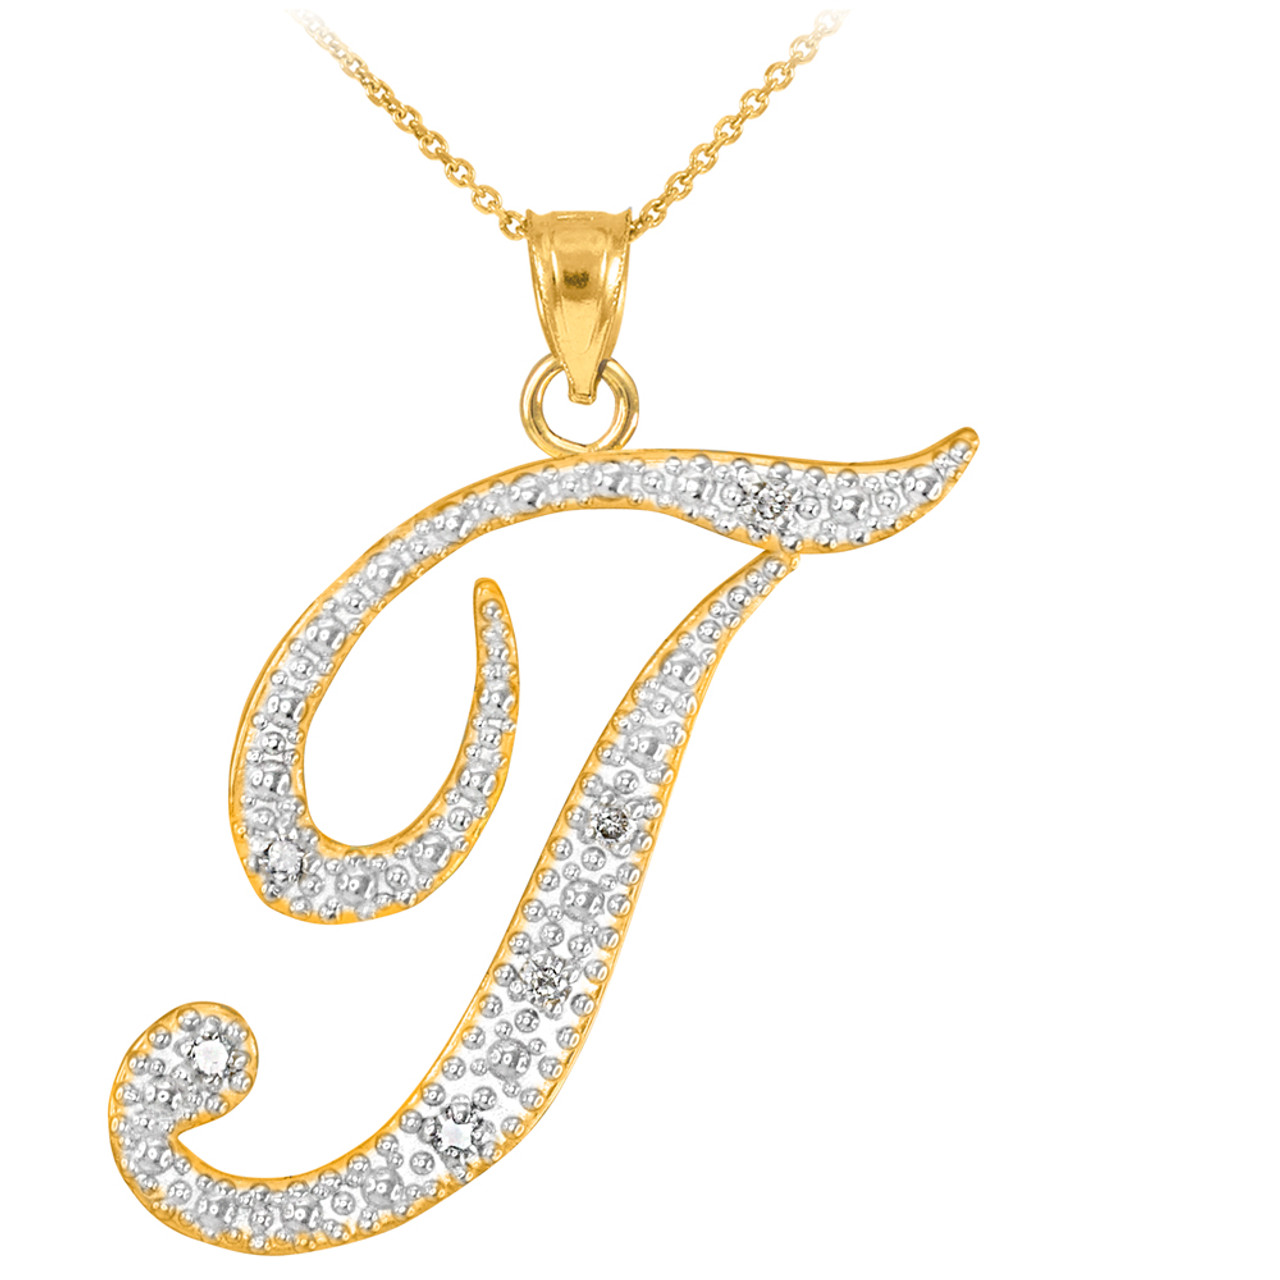 pendant necklace co pltaed gold t for zircon gift exquisite african necklaces aetherair asli men india women letter